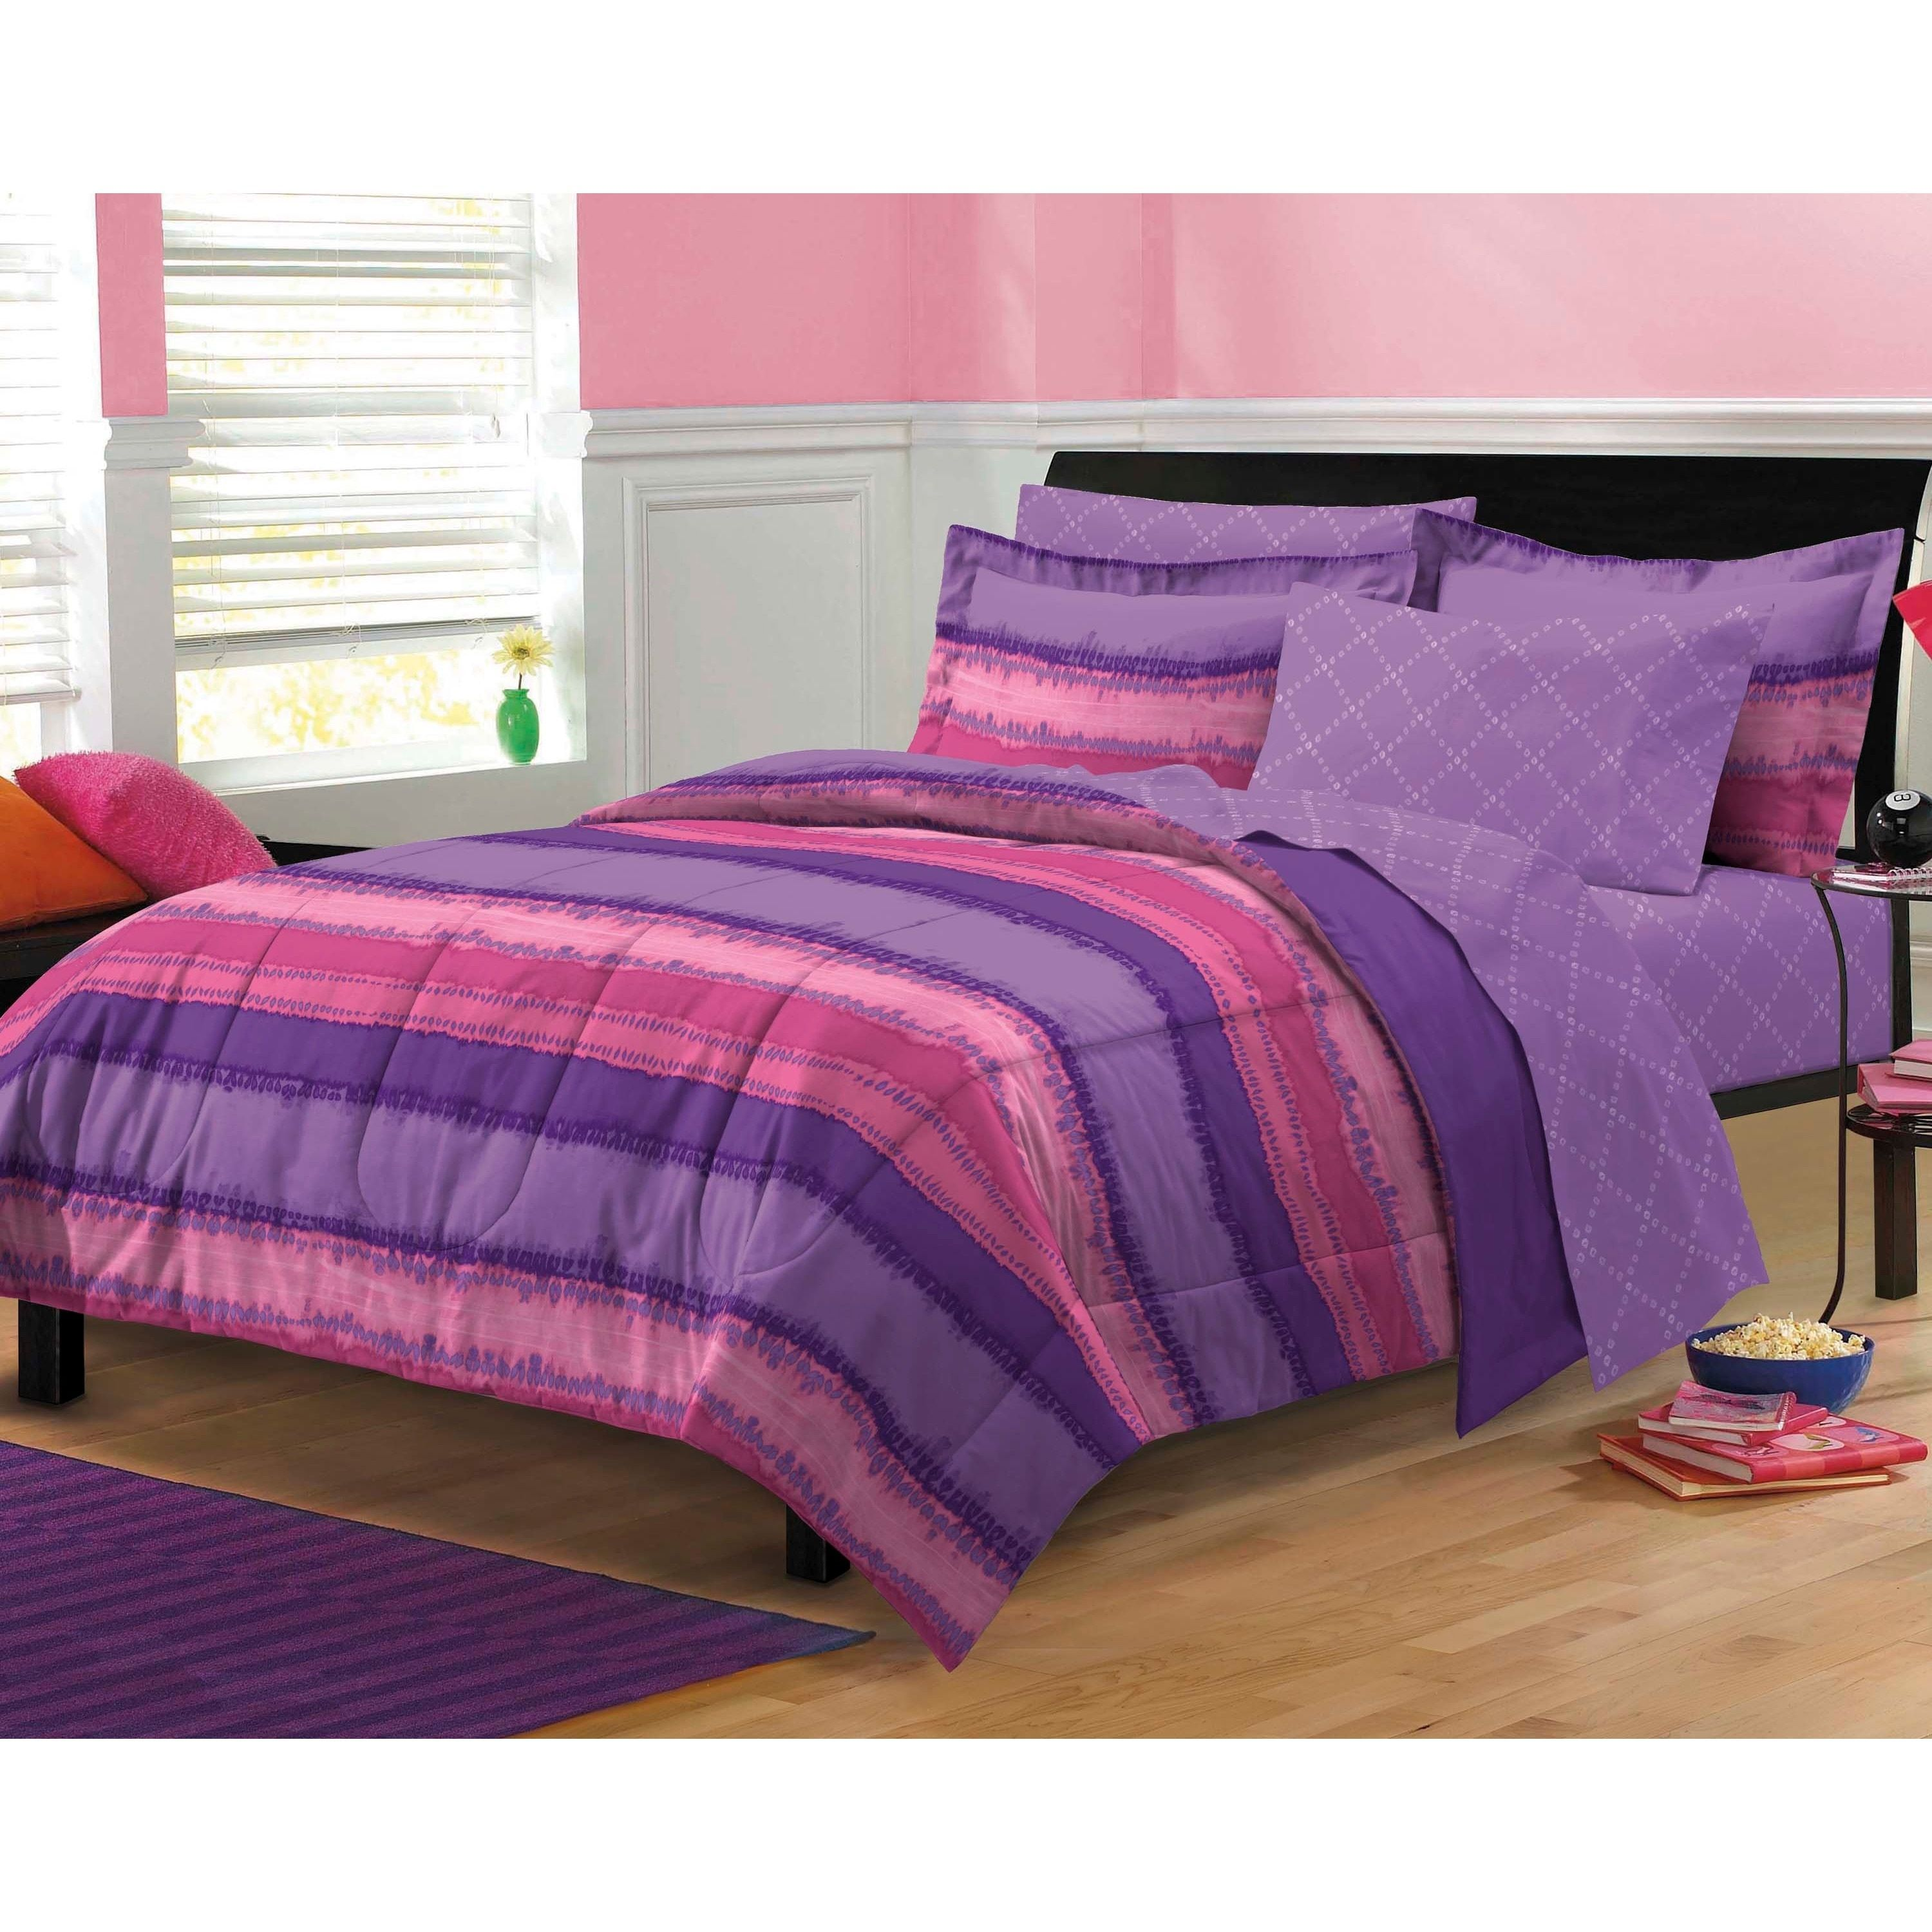 Tie Dye Purple Pink 7 Piece Bed In A Bag With Sheet Set